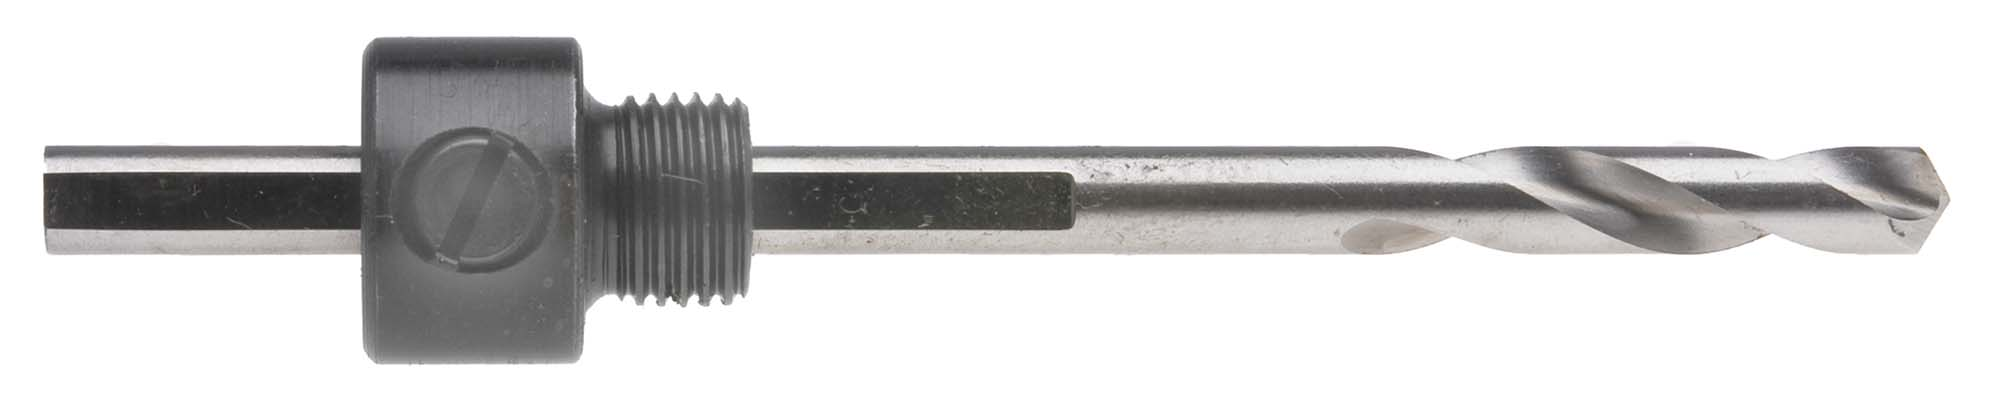 "M K Morse MA35PS Hole Saw Mandrel for 1-1/4"" - 6"" with 3/8"" Hex Shank"